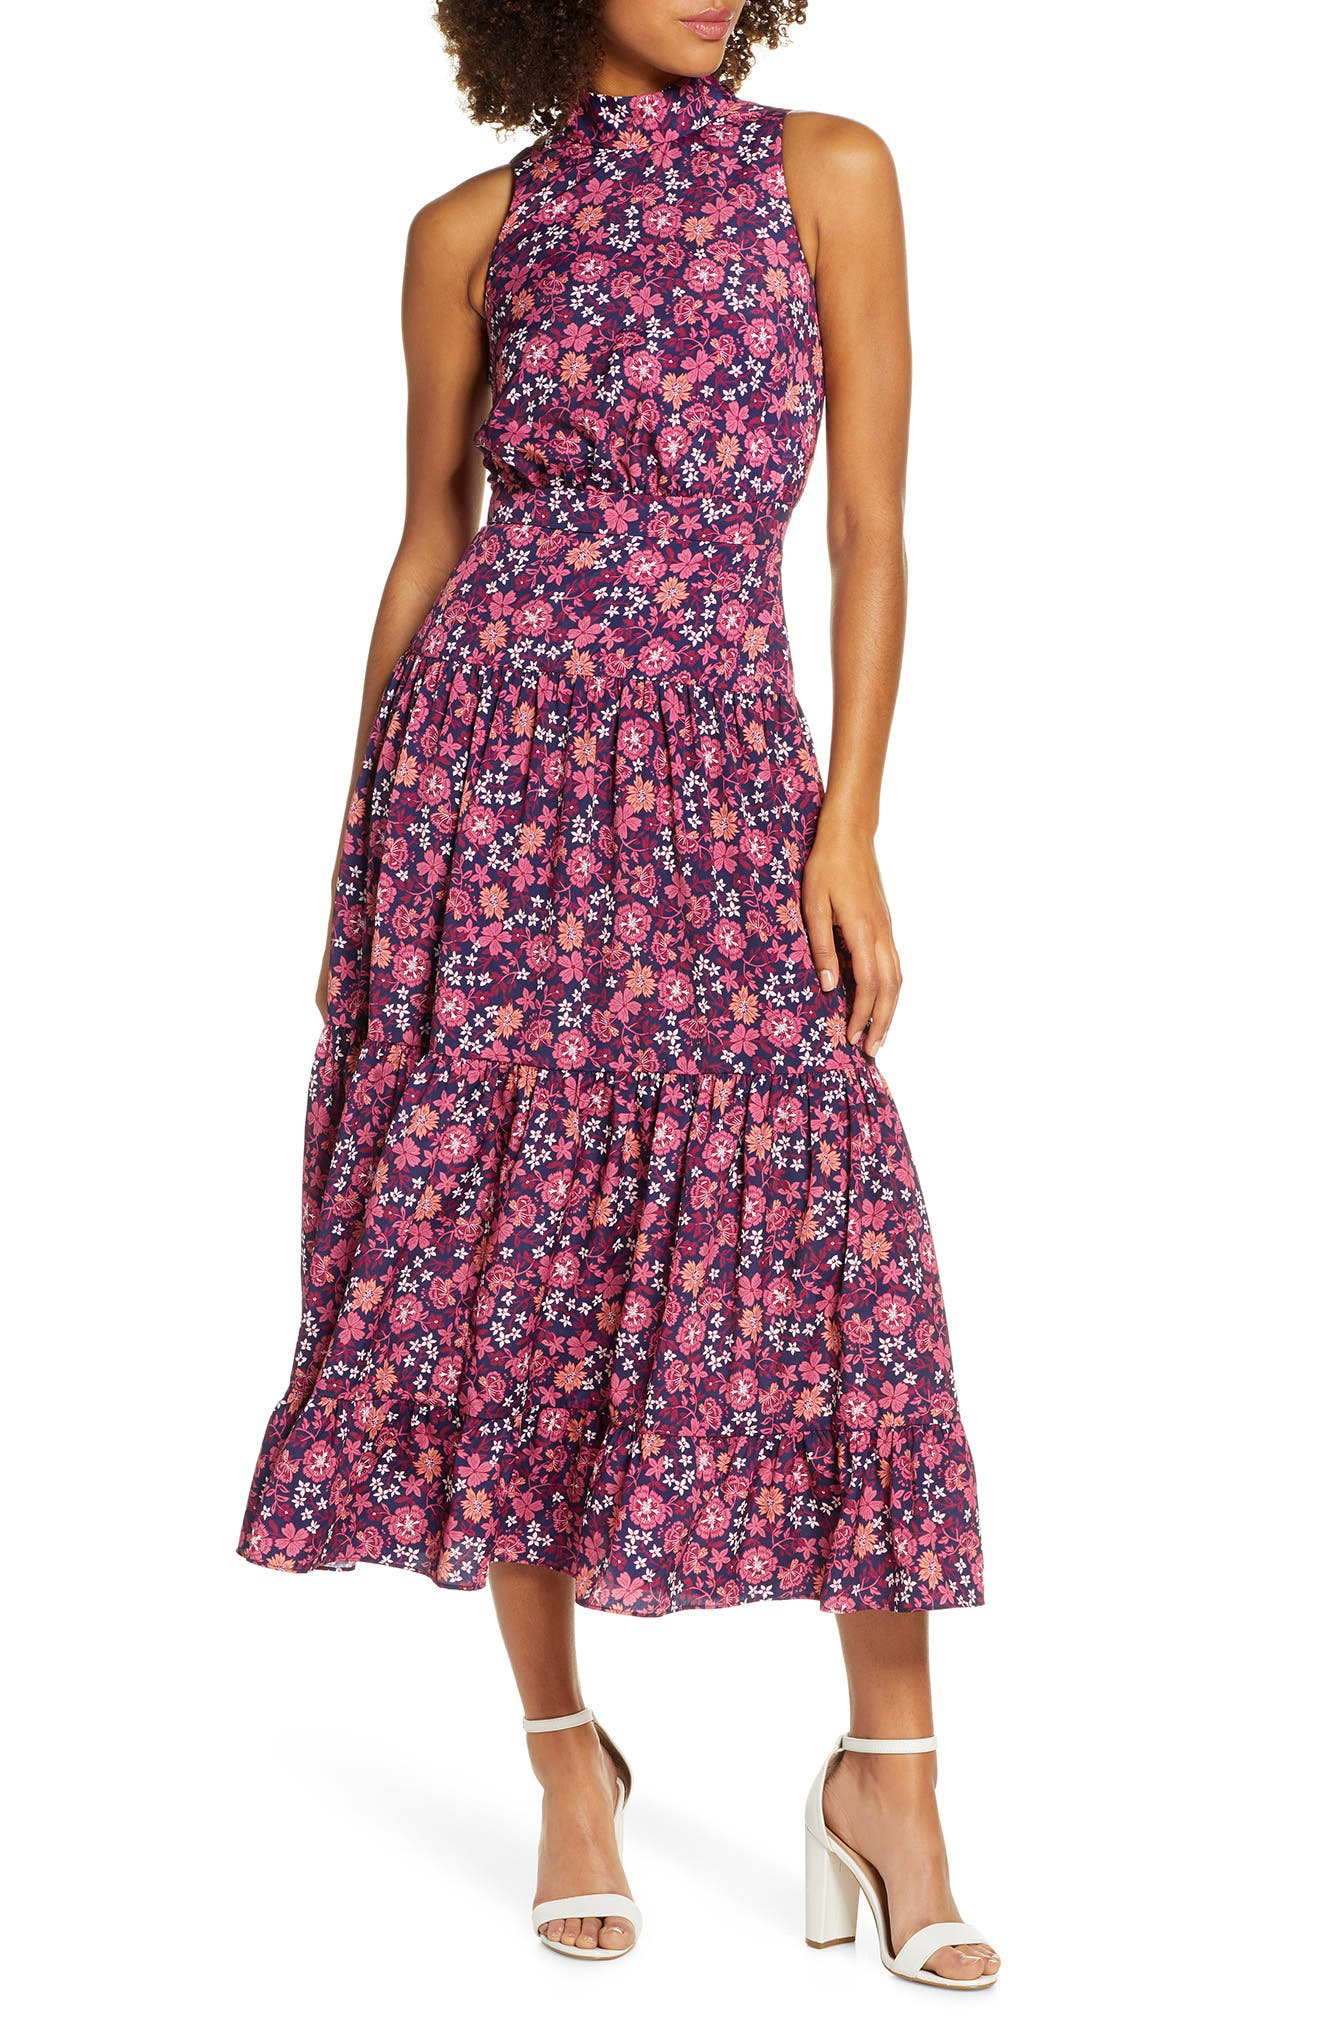 Chelsea28 Floral Print Halter Neck Midi Dress